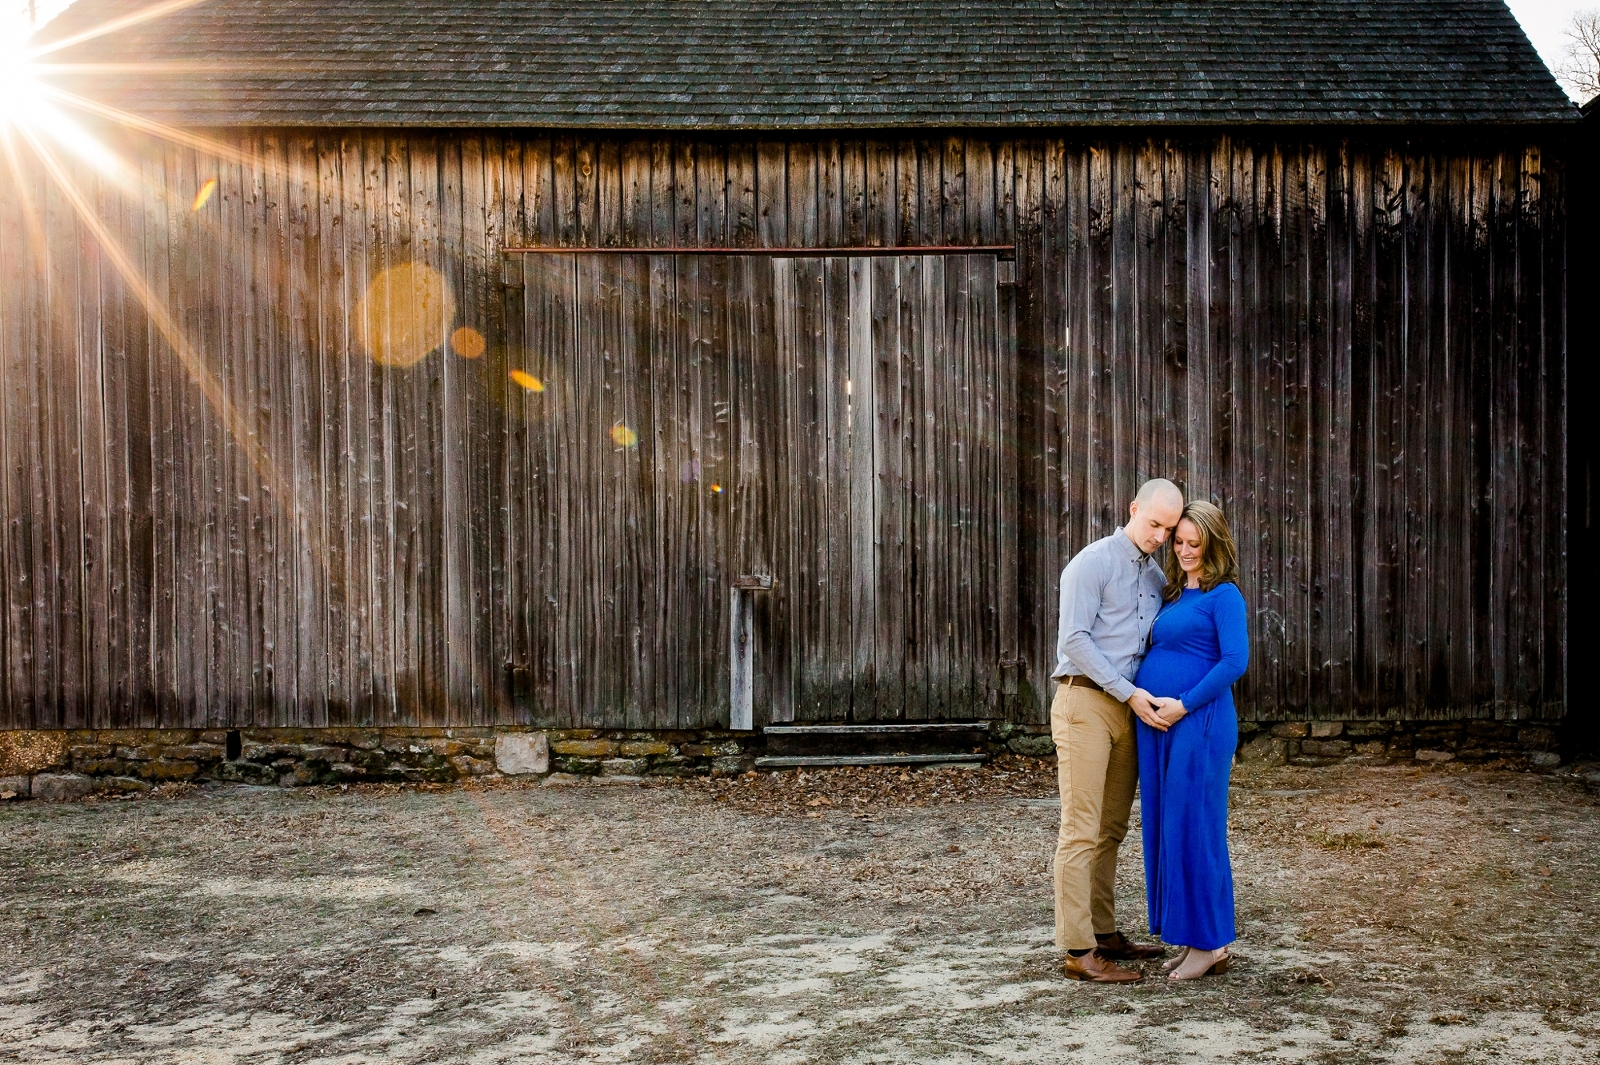 Golden hour is beautiful at rustic Batsto Village maternity session.